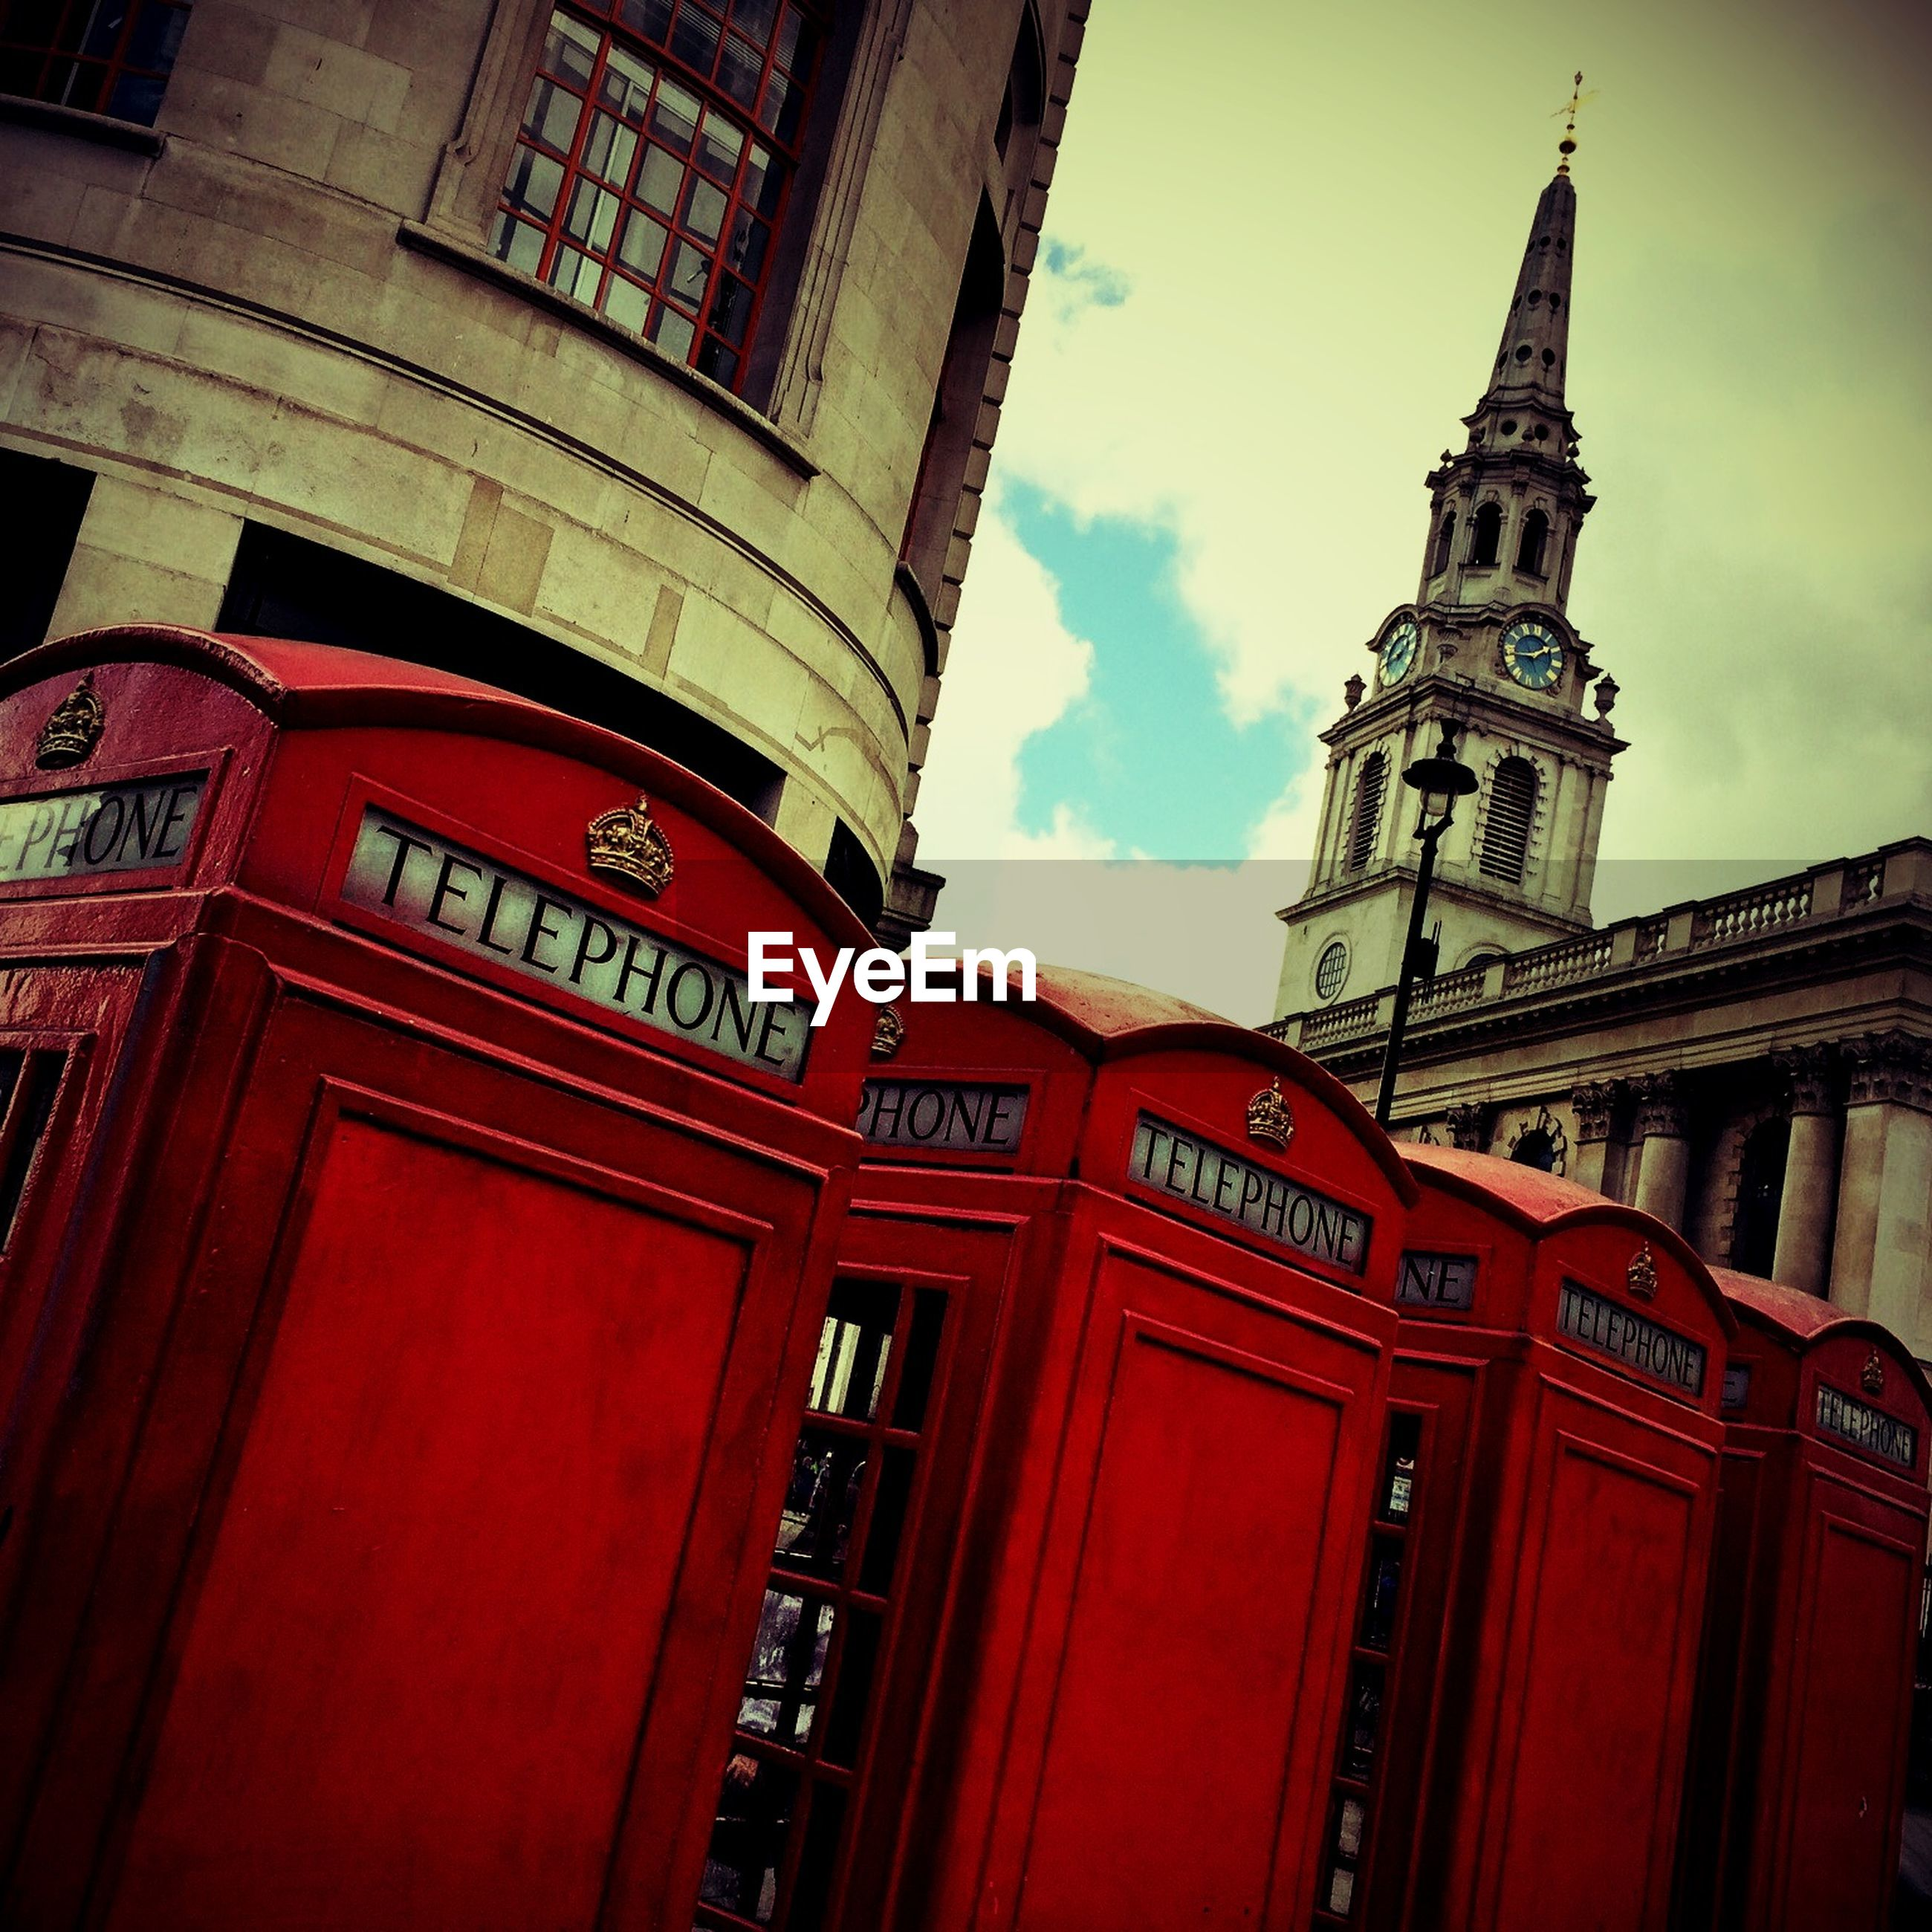 Low angle view of telephone booths against clock tower and buildings